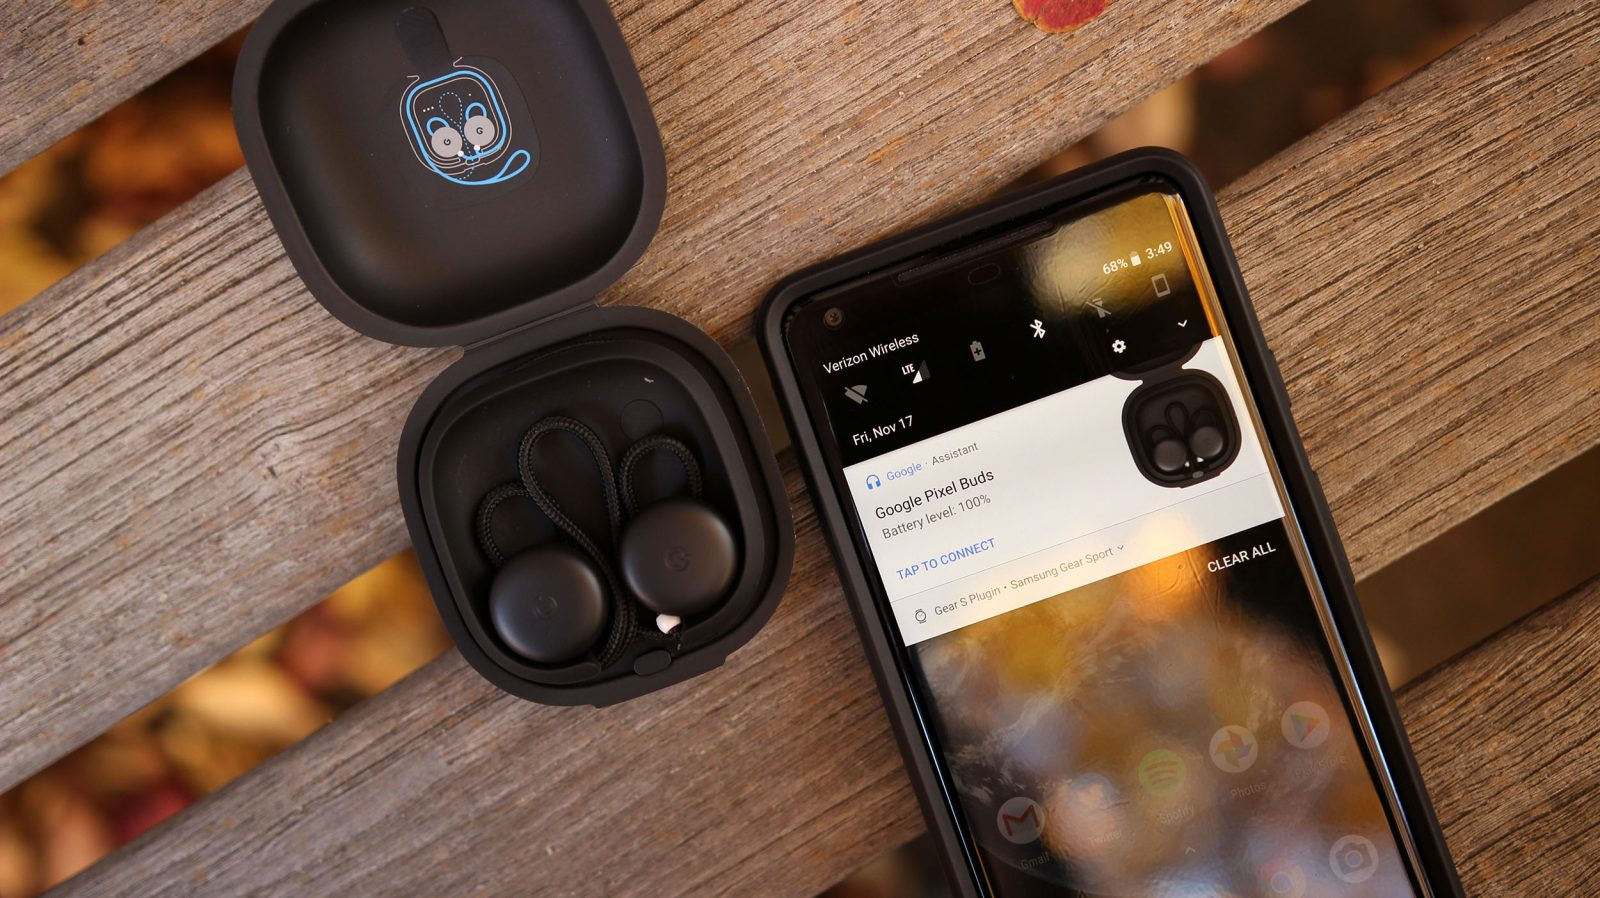 Fast Pair now syncs Bluetooth accessories across Android